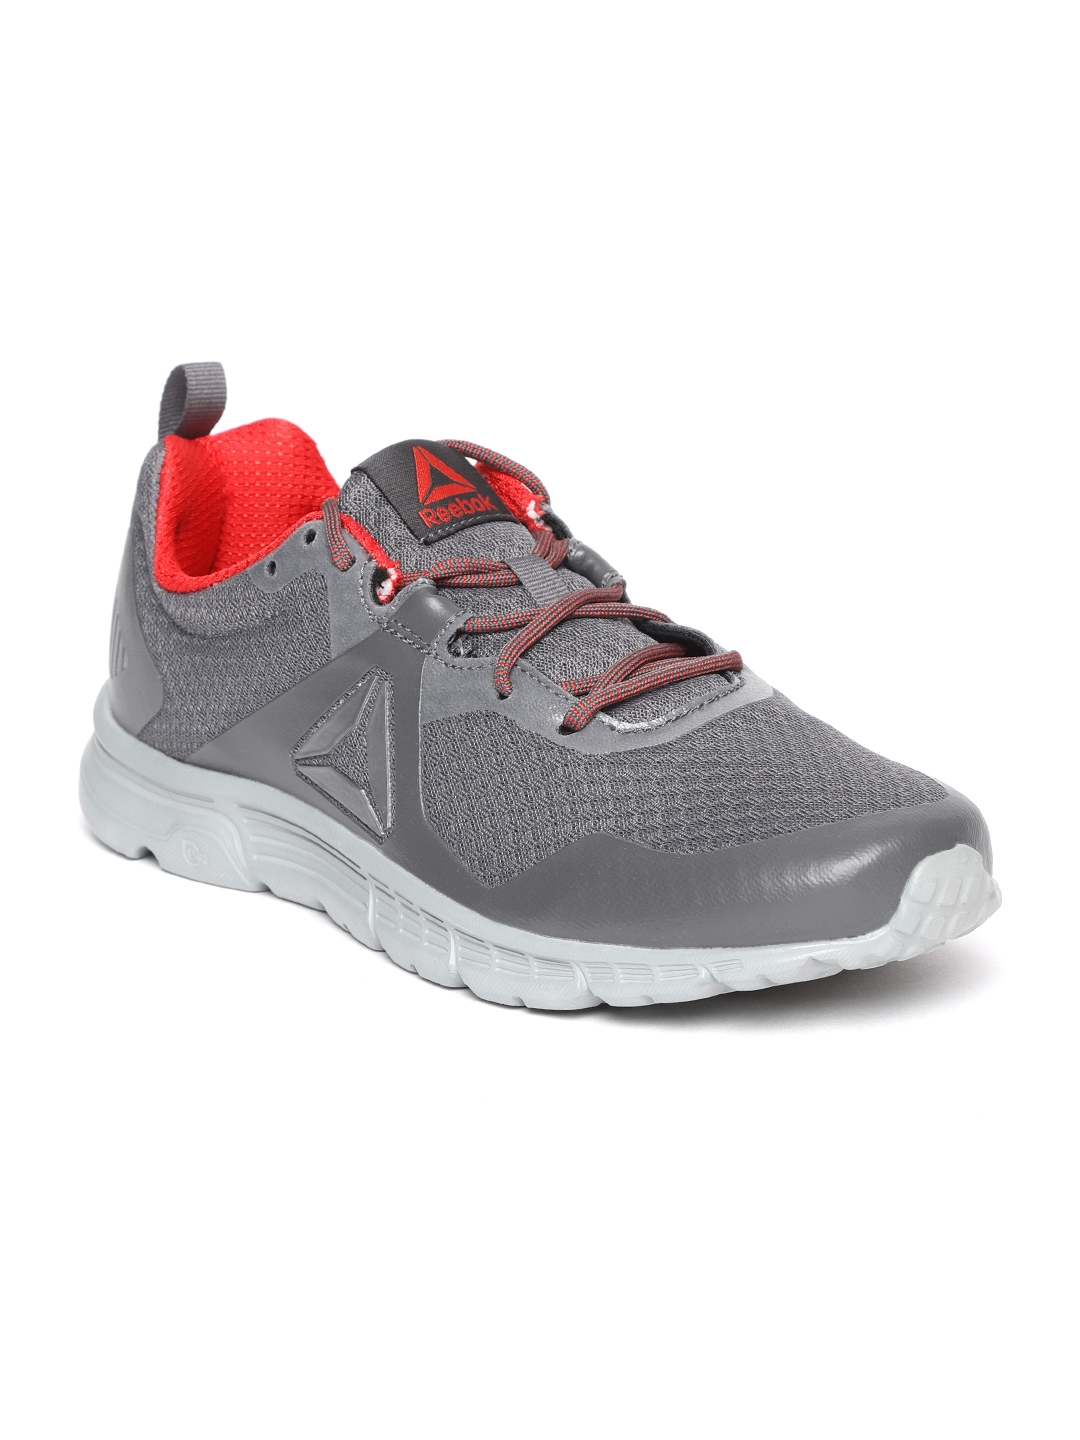 Buy Reebok Men Grey Supreme 4.0 Running Shoes - Sports Shoes for Men ... 1a4cc1dc7